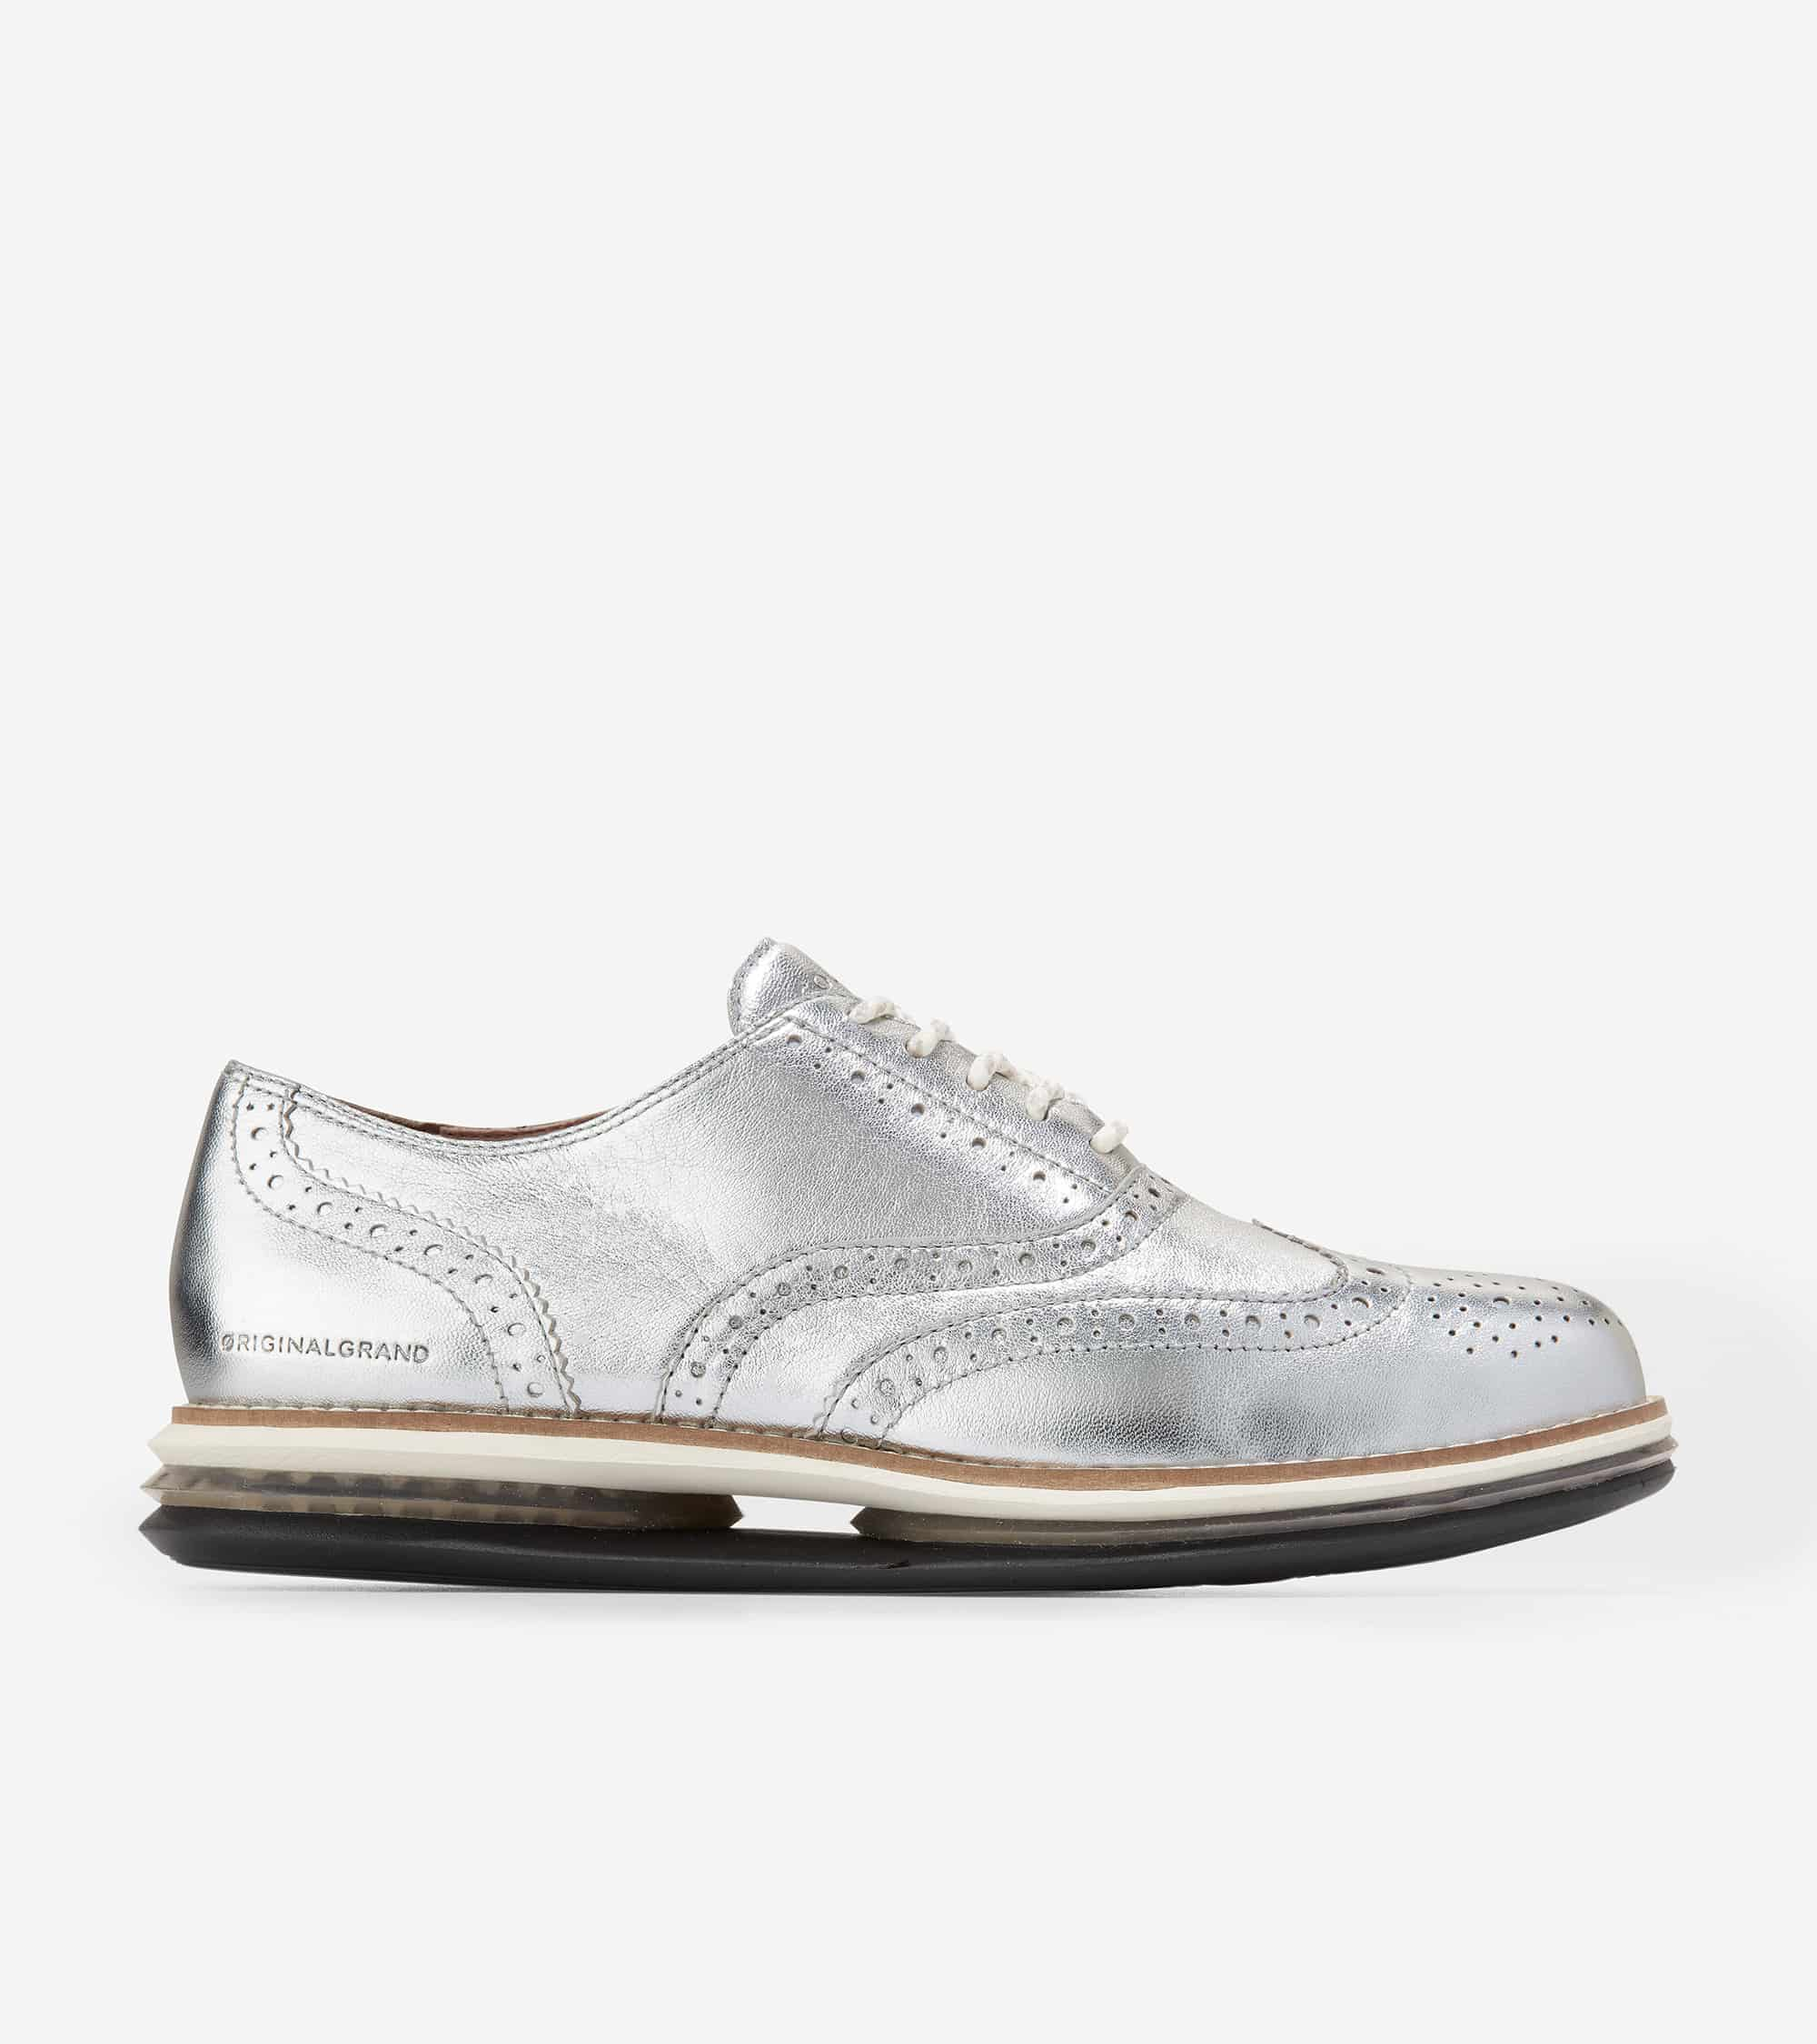 Cole Haan Øriginalgrand Cloudfeel Energy Twin Oxford Silver Talca/ Paloma/ Paloma Gel/ Black